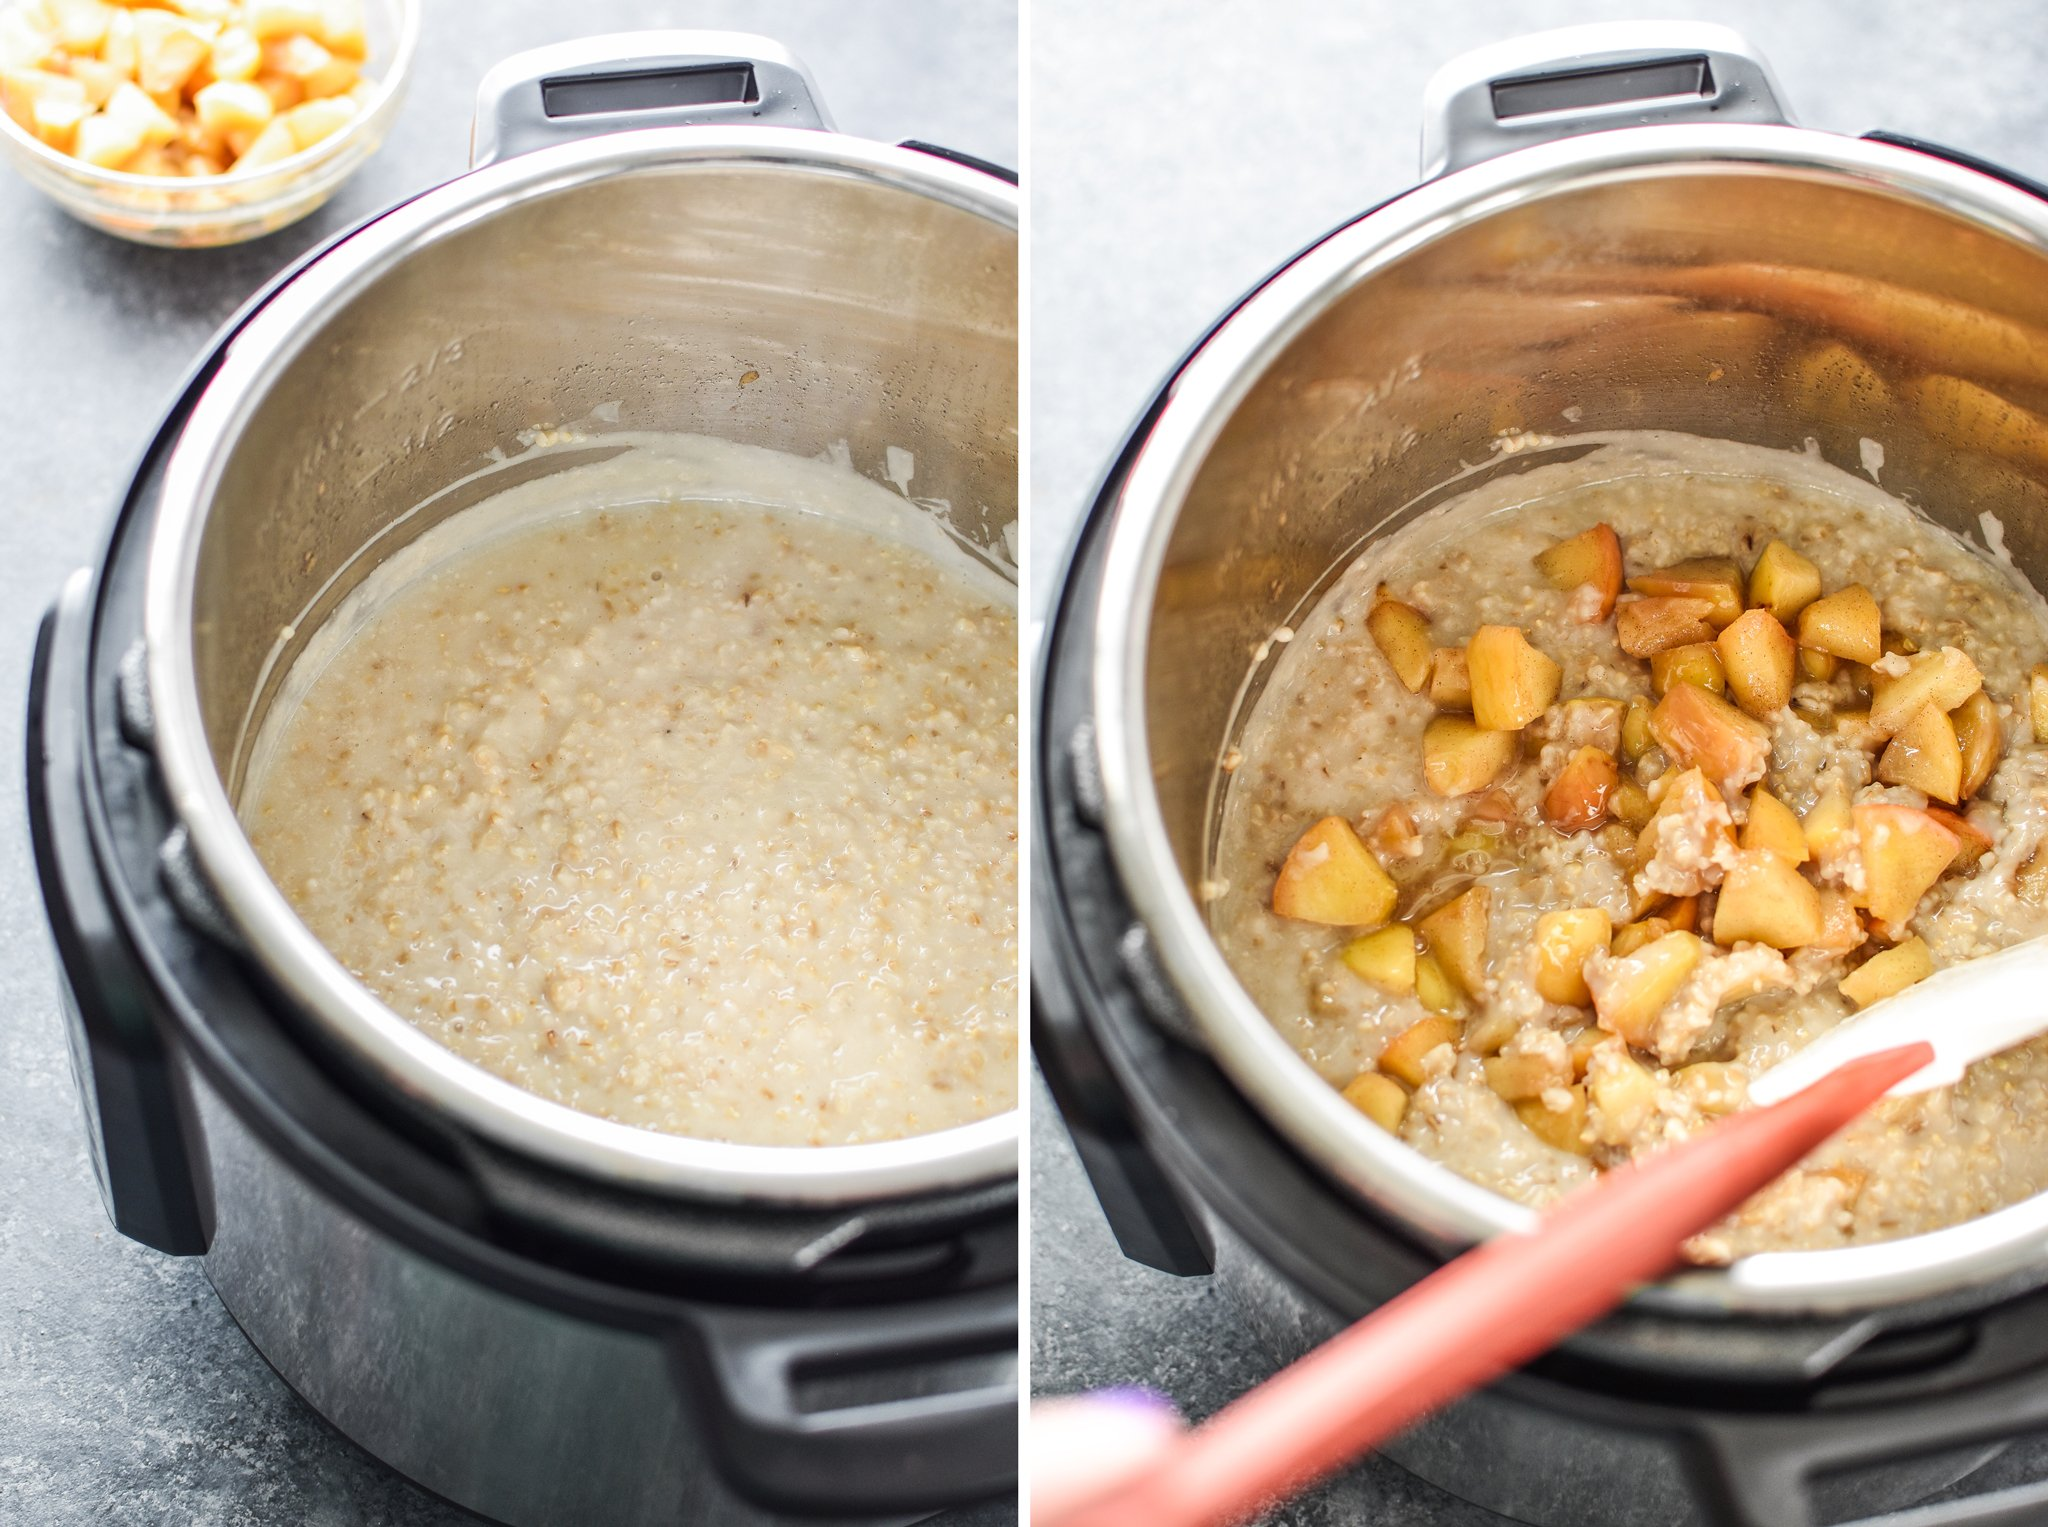 Left: Cooked oatmeal inside the instant pot. Right: Adding cooked apples to the Instant Pot oatmeal.